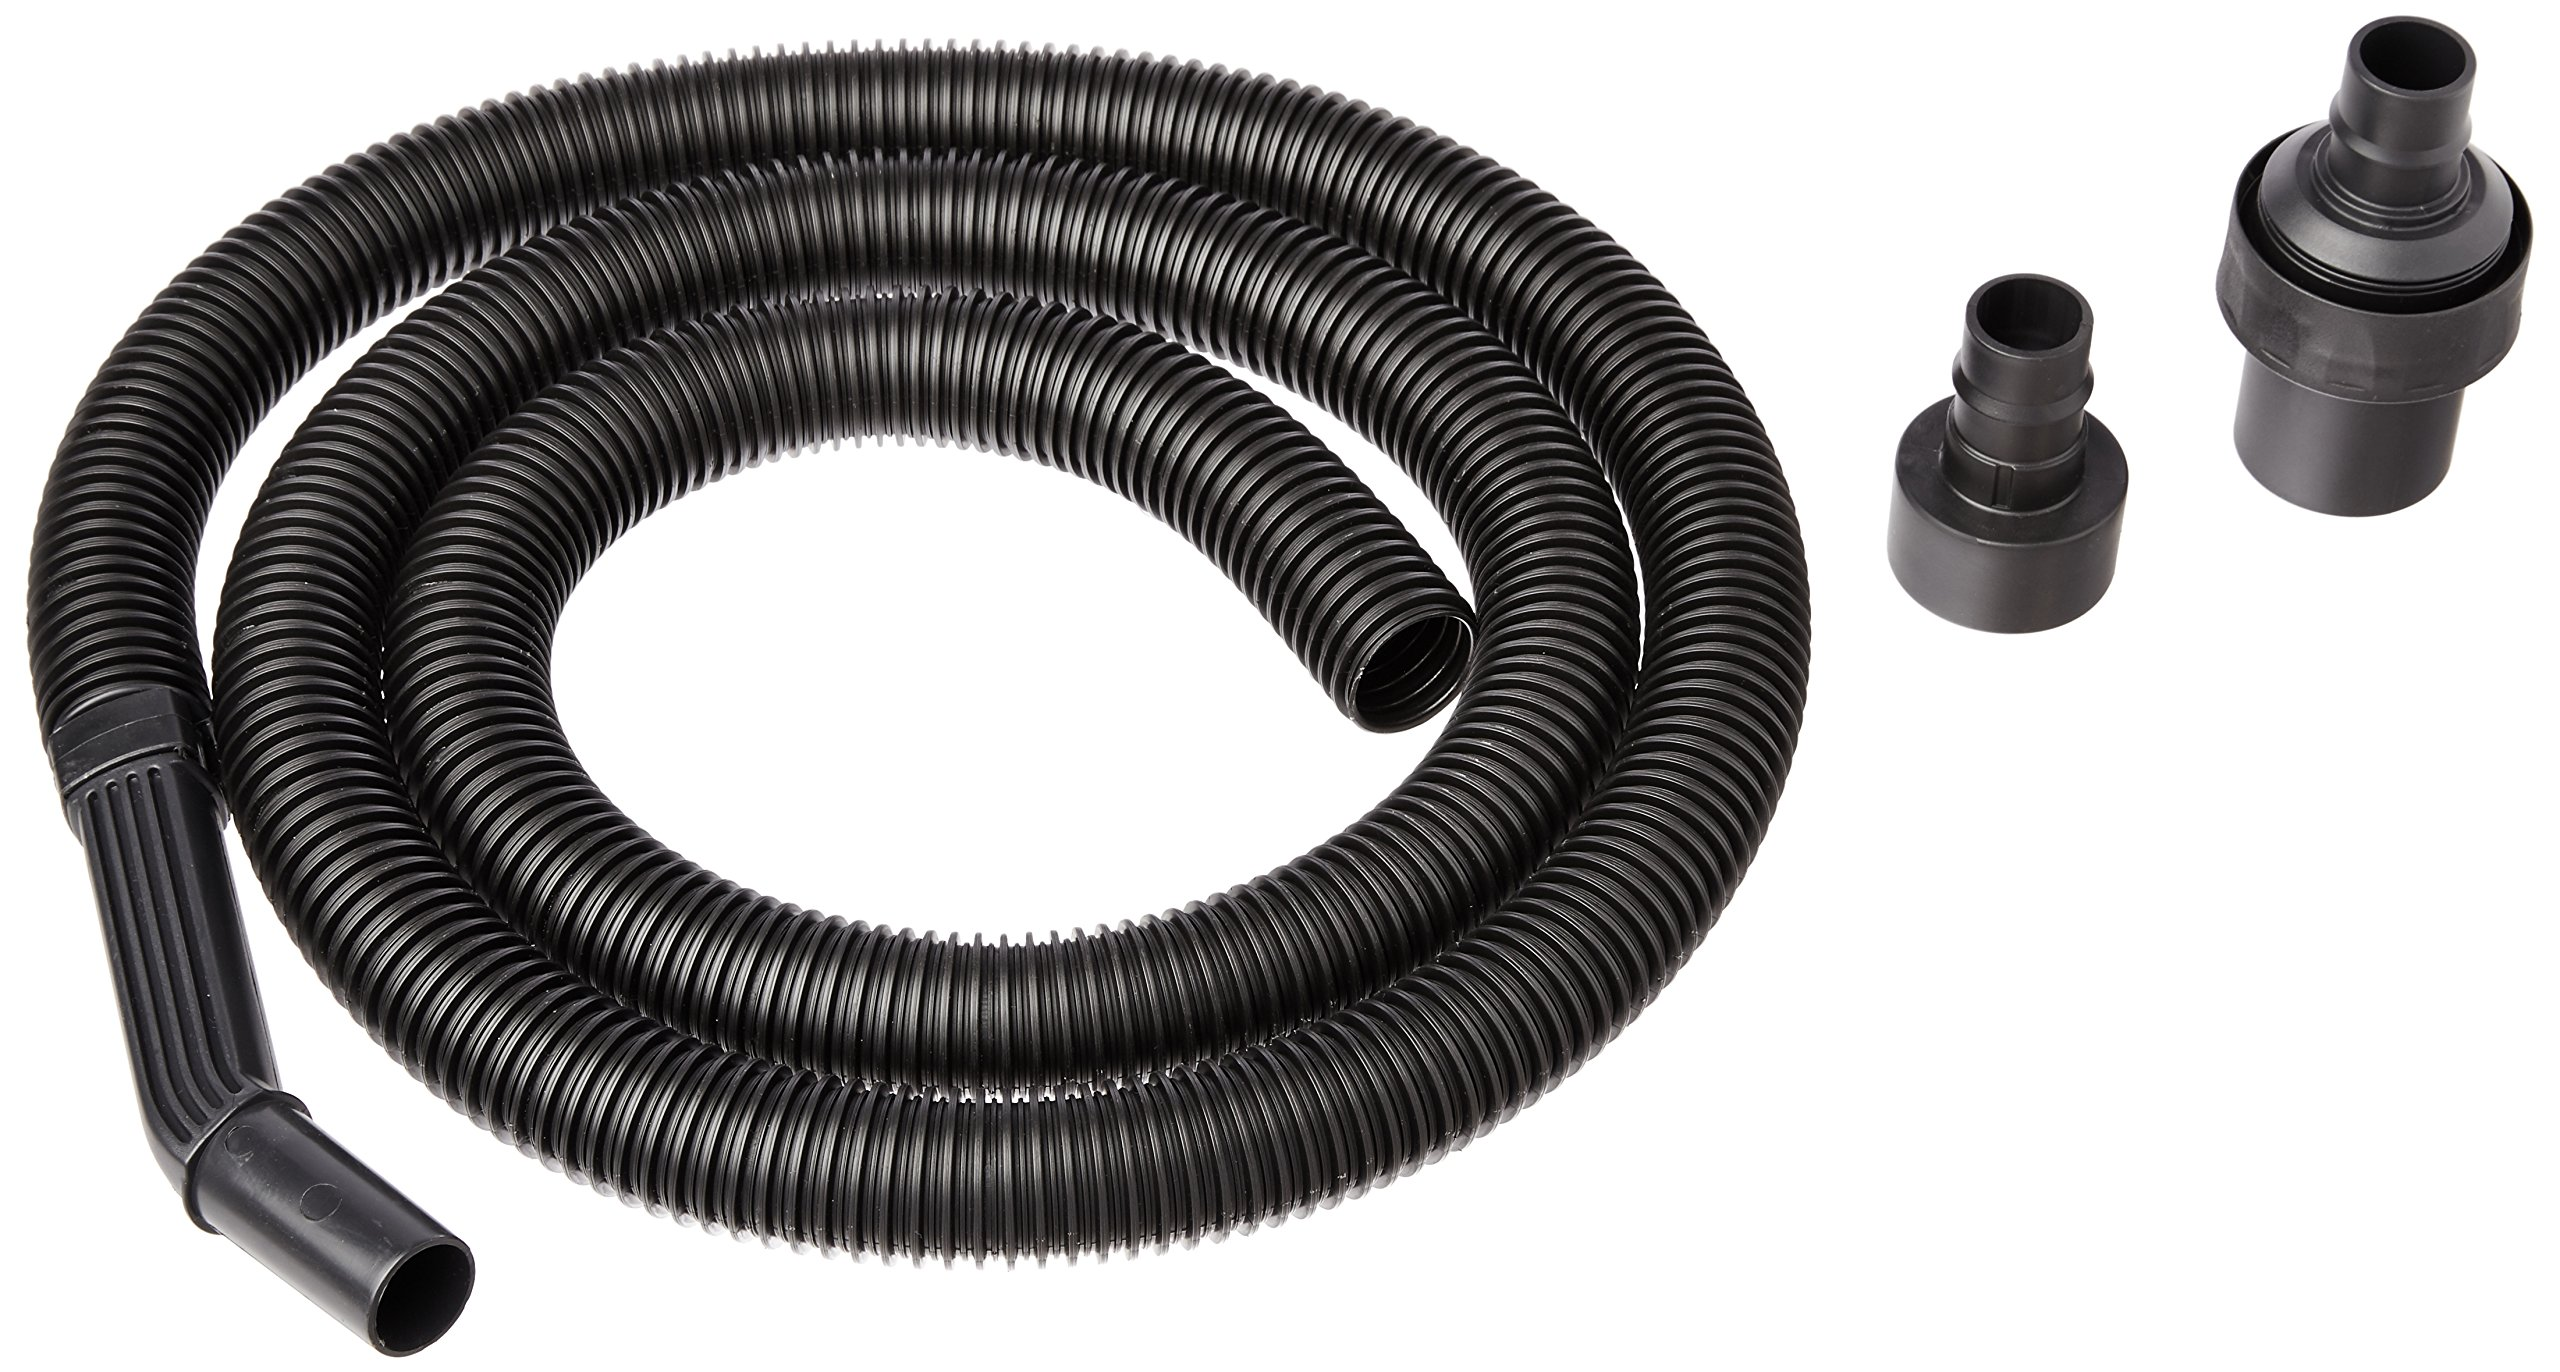 Shop-Vac Hose w/ Handle & Airflow Control